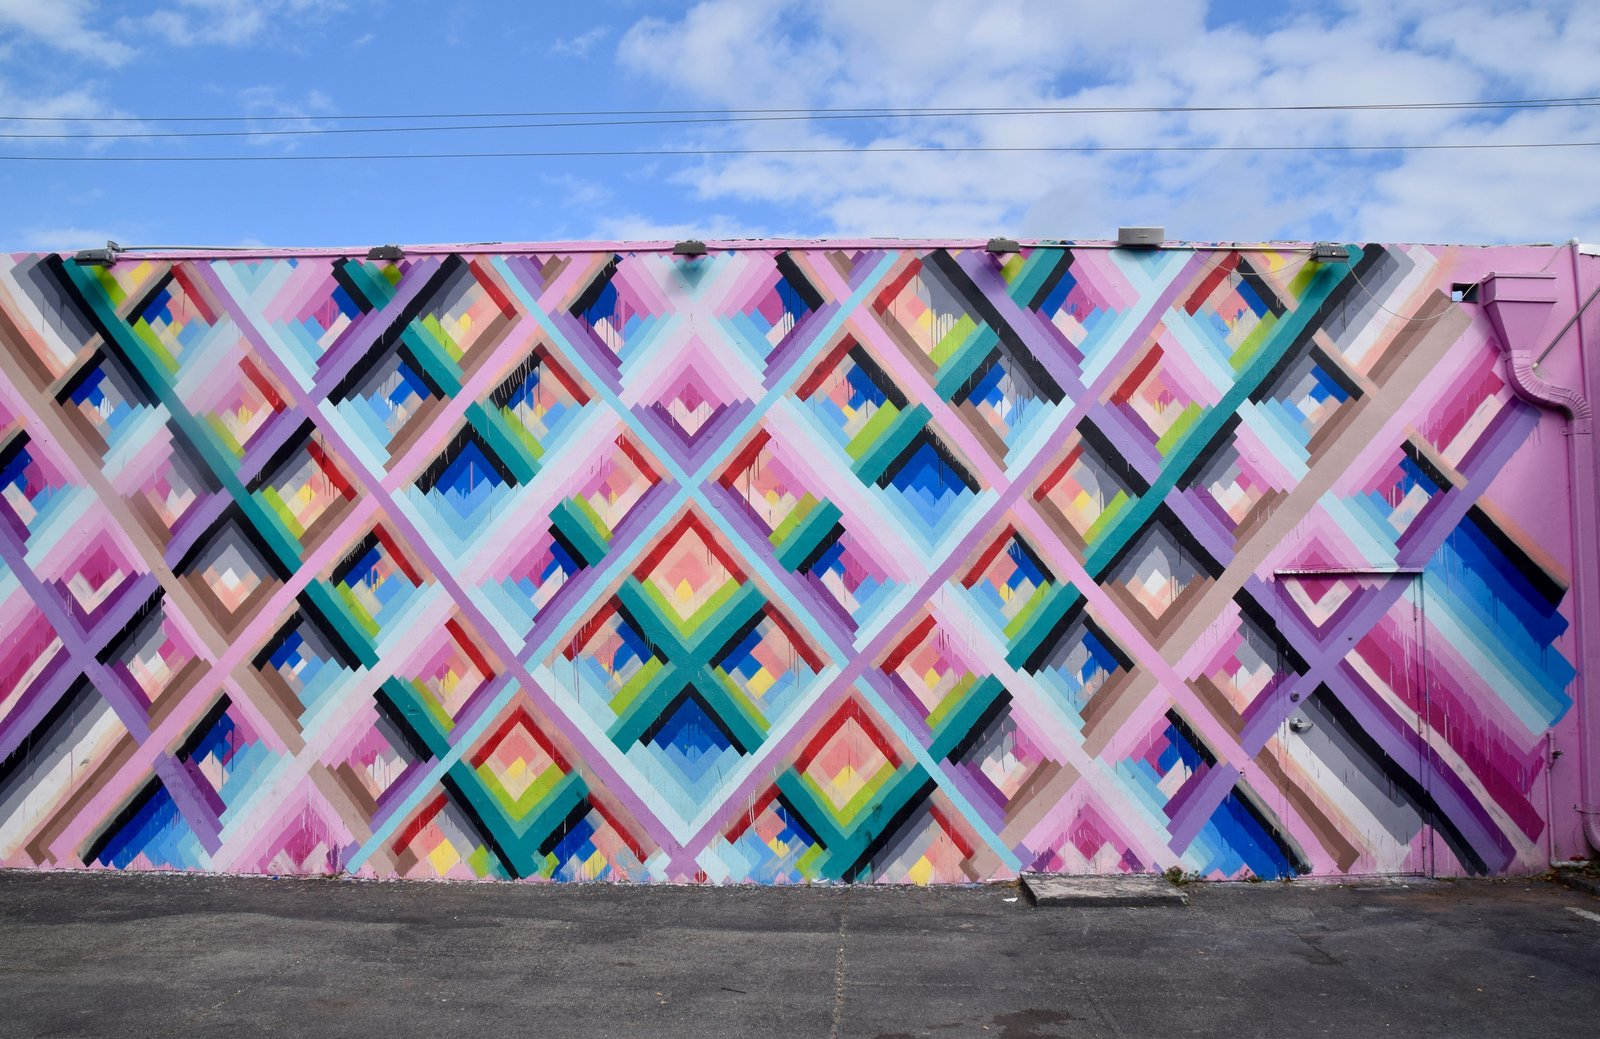 Maya Hayuk's colorful wall mural in MIami that was created for Art Basel 2013 features an energy that's fit for the streets of this vibrant city.  Photo 8 of 8 in Hot Tropic Part 1